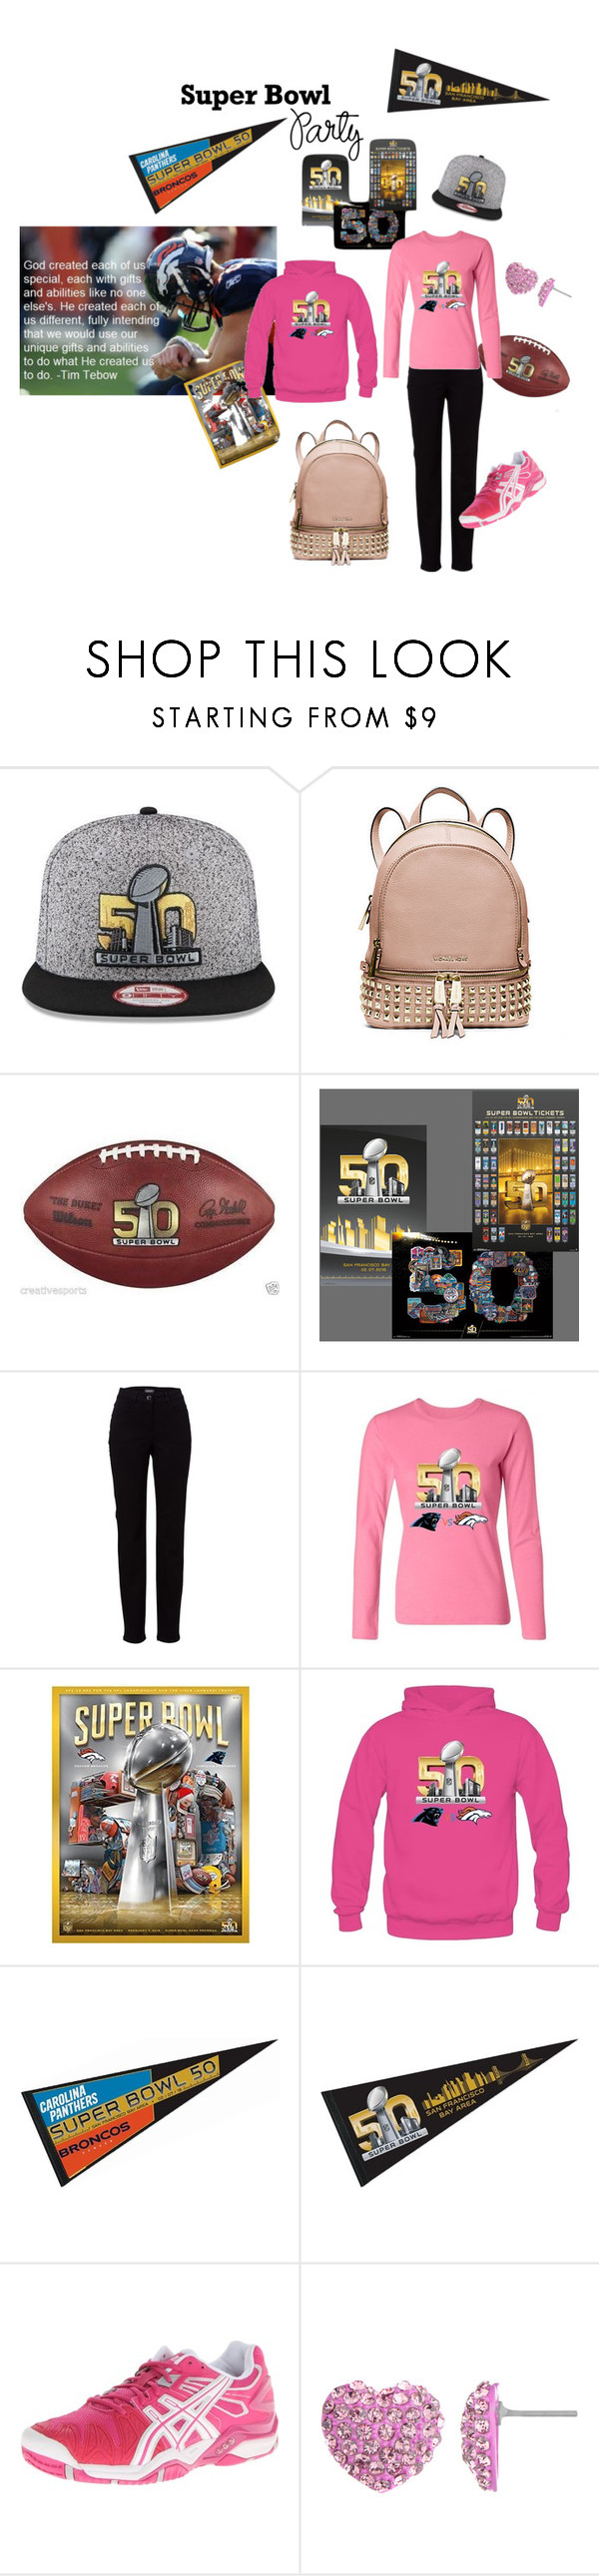 """Super Bowl Party"" by beckyarender ❤ liked on Polyvore featuring Michael Kors, Basler, Asics, women's clothing, women, female, woman, misses, juniors and SuperBowlParty"